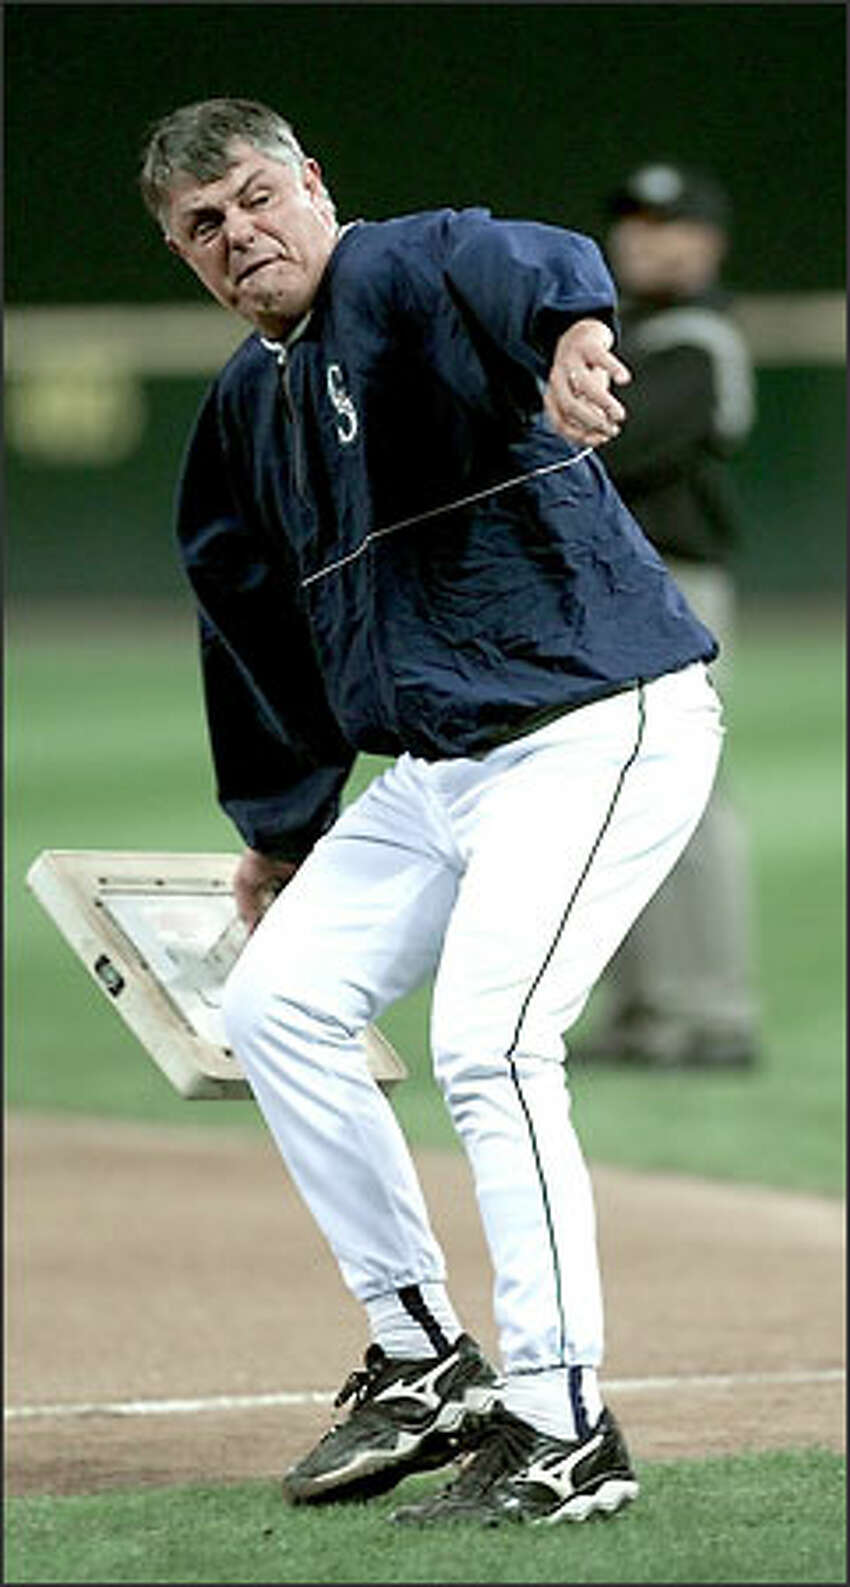 Mariners manager Lou Piniella throws first base in a fit of utter rage during a game against Texas on Sept. 18 at Safeco Field. Piniella went nuts after a bad call and an ensuing